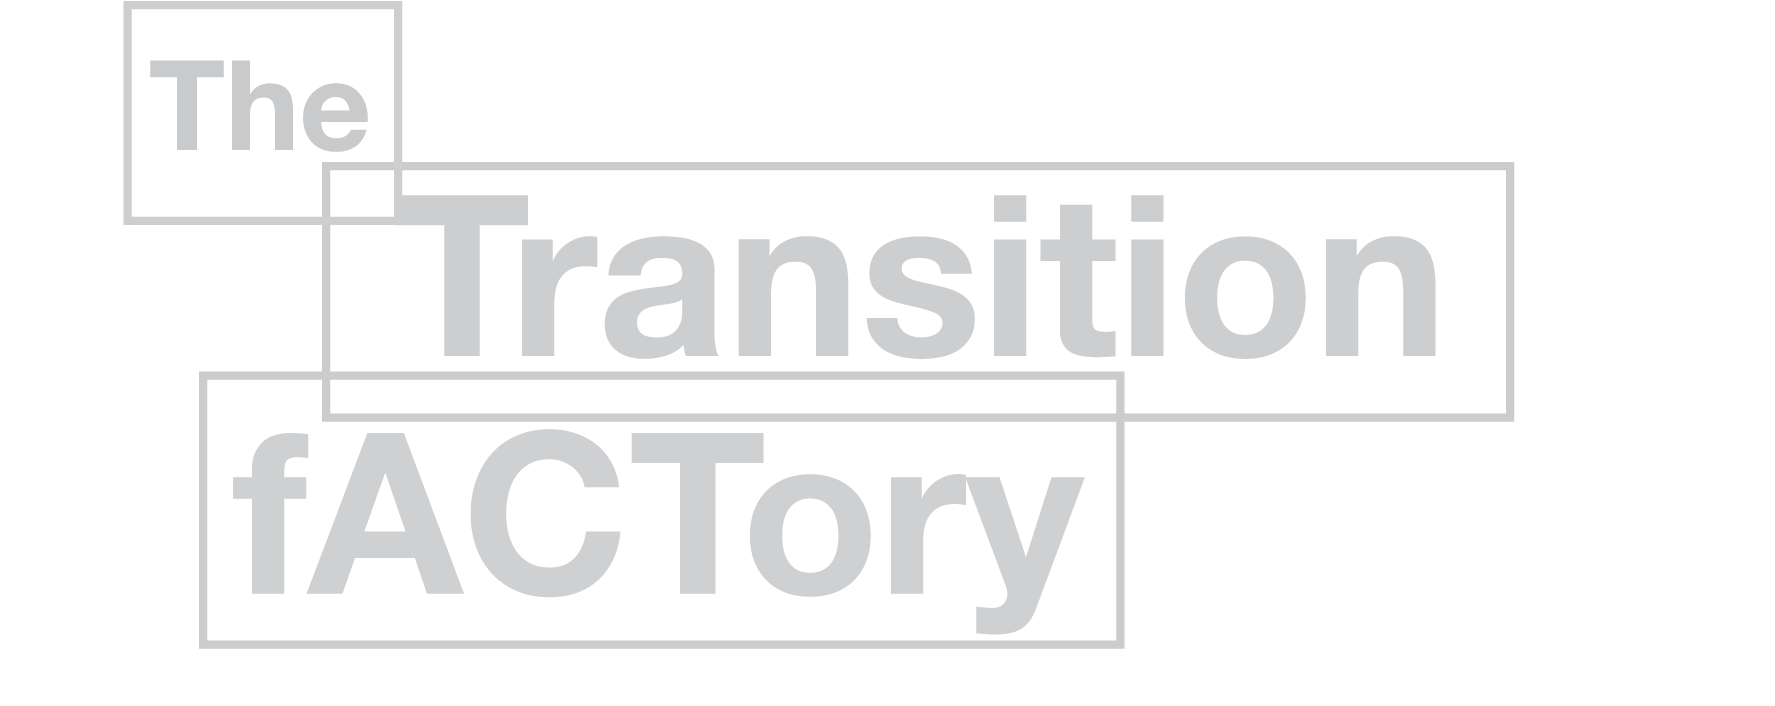 THE TRANSITION FACTORY